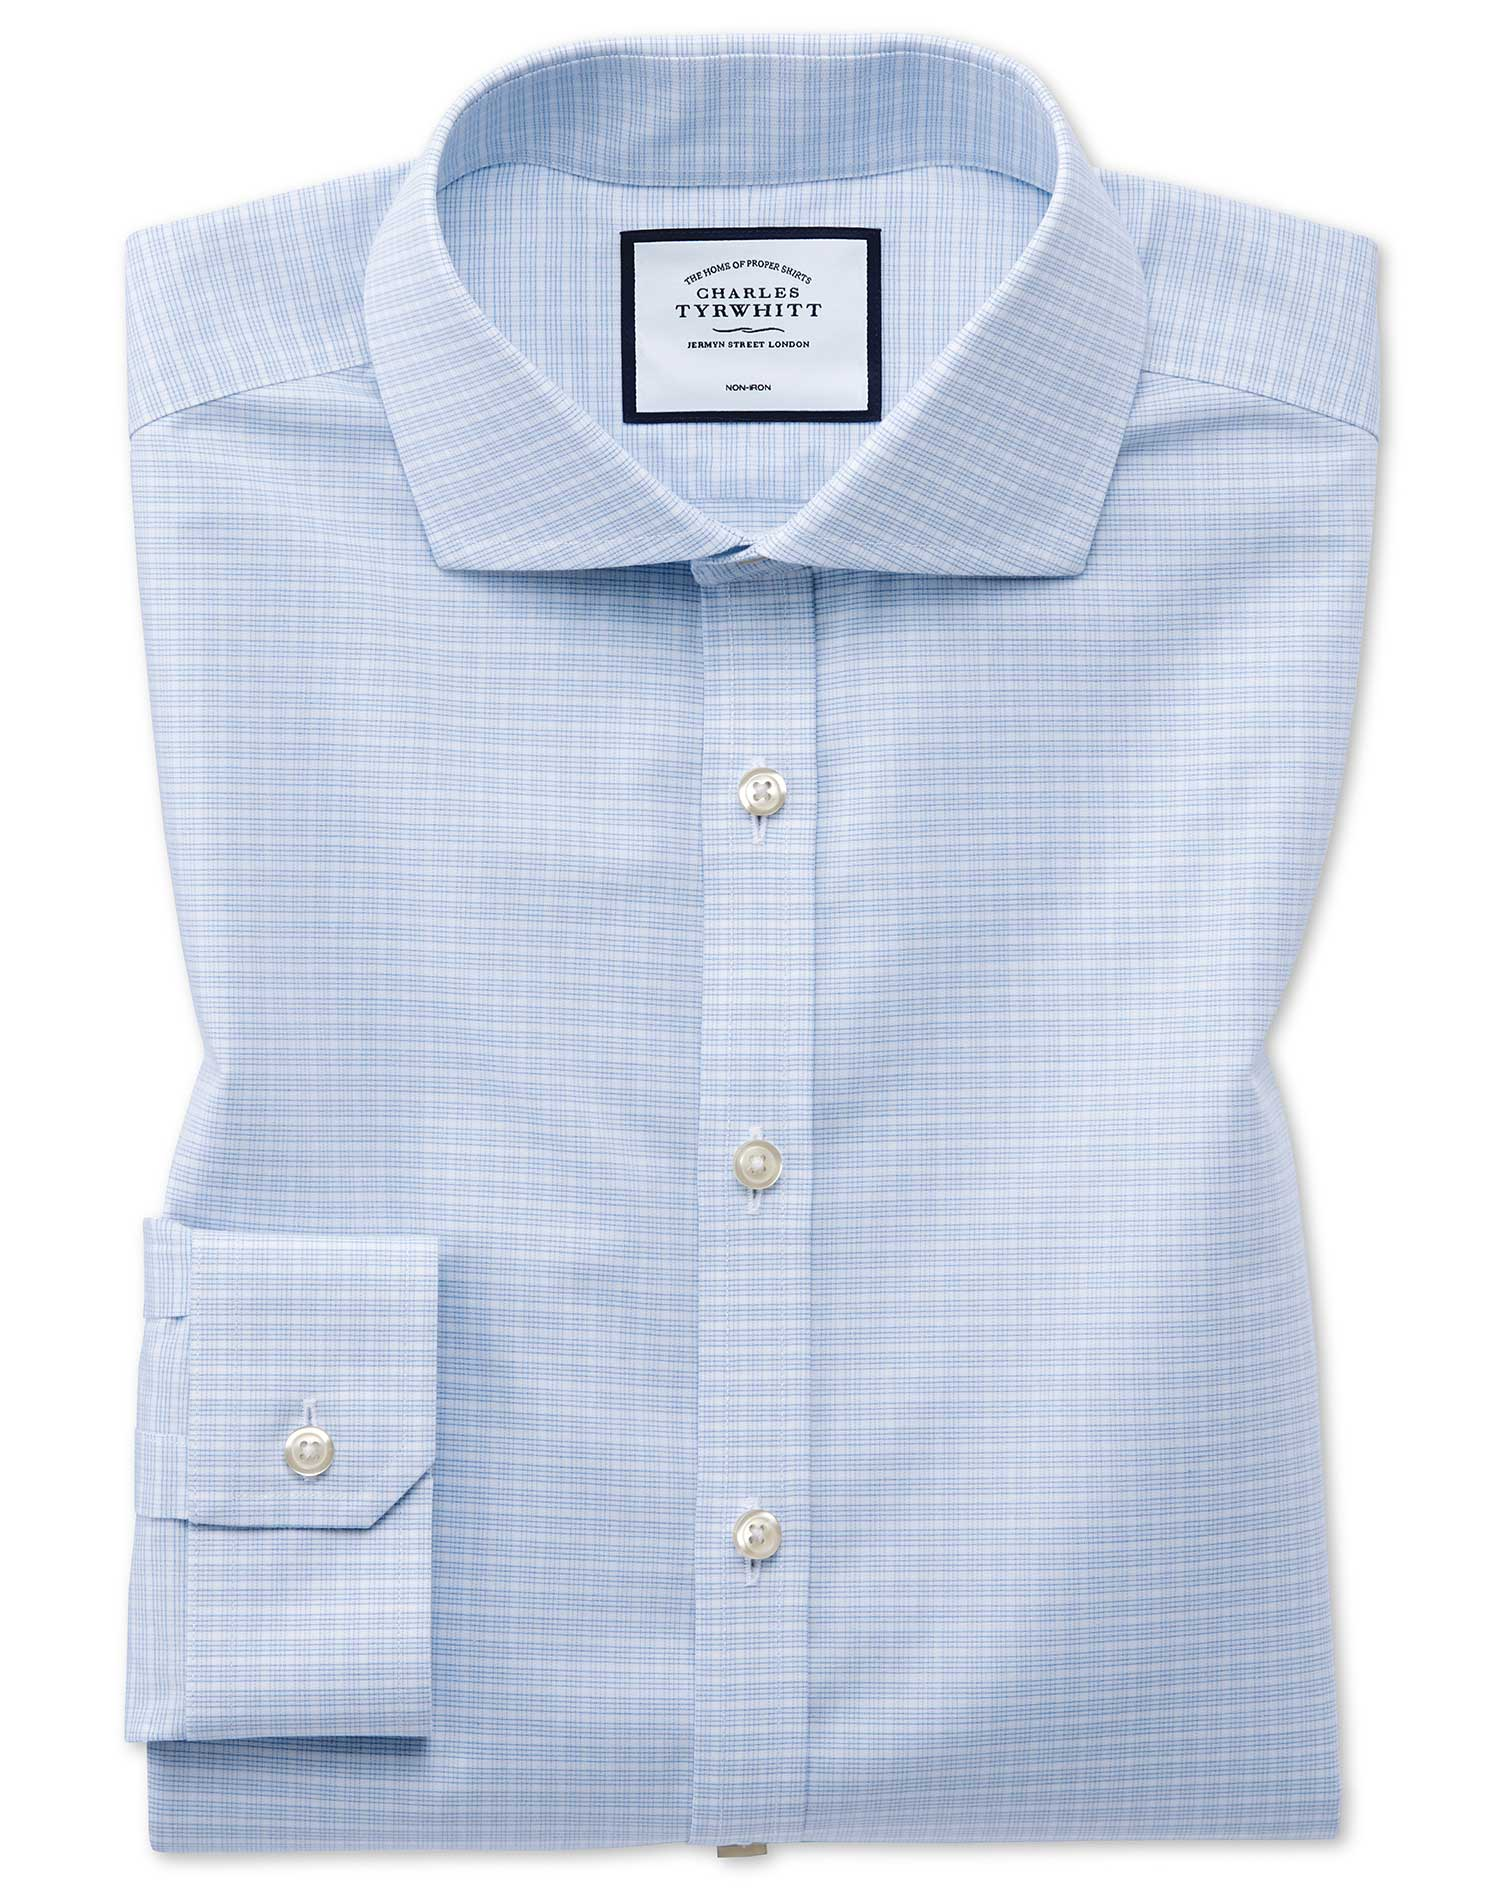 Super Slim Fit Non-Iron 4-Way Stretch Sky Blue Check Cotton Formal Shirt Single Cuff Size 15.5/34 by